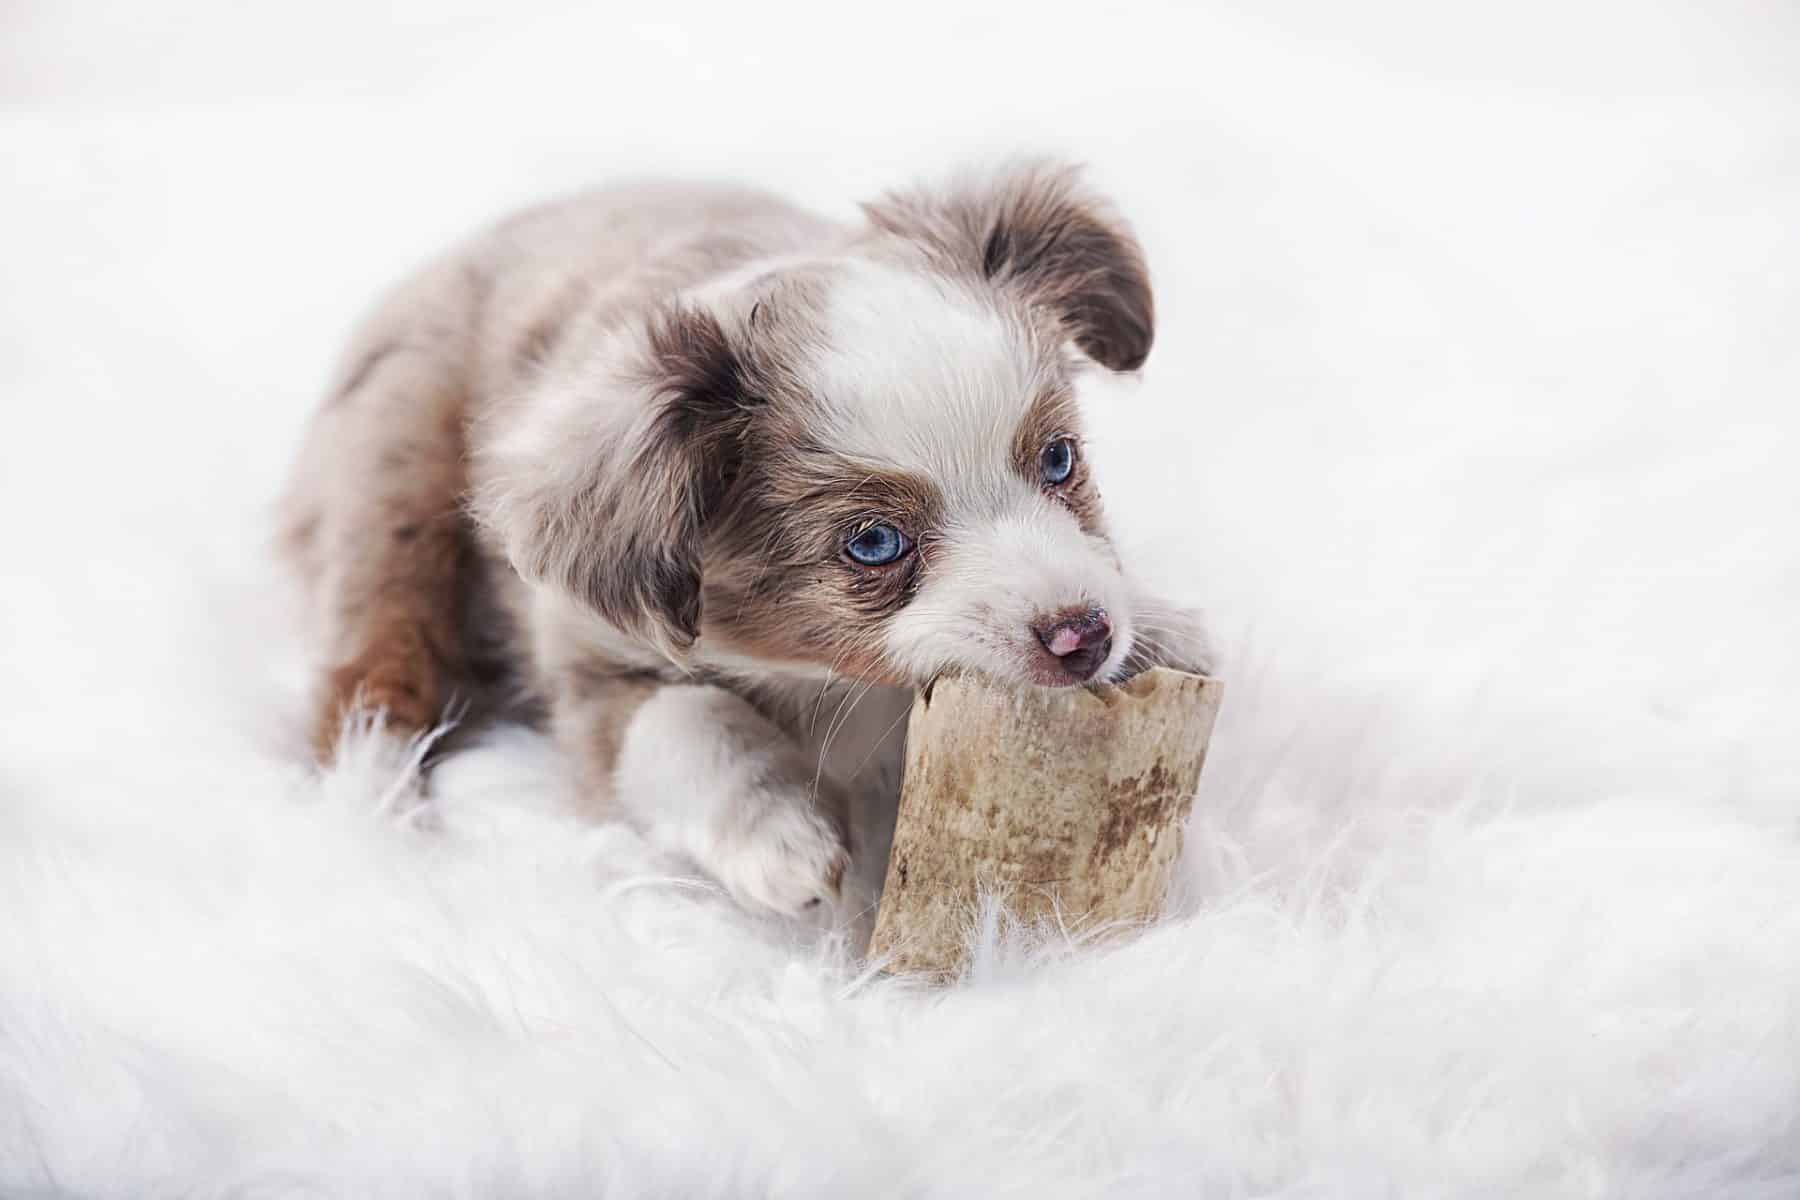 Australian Shepherd Puppies The Ultimate Guide For New Dog Owners The Dog People By Rover Com